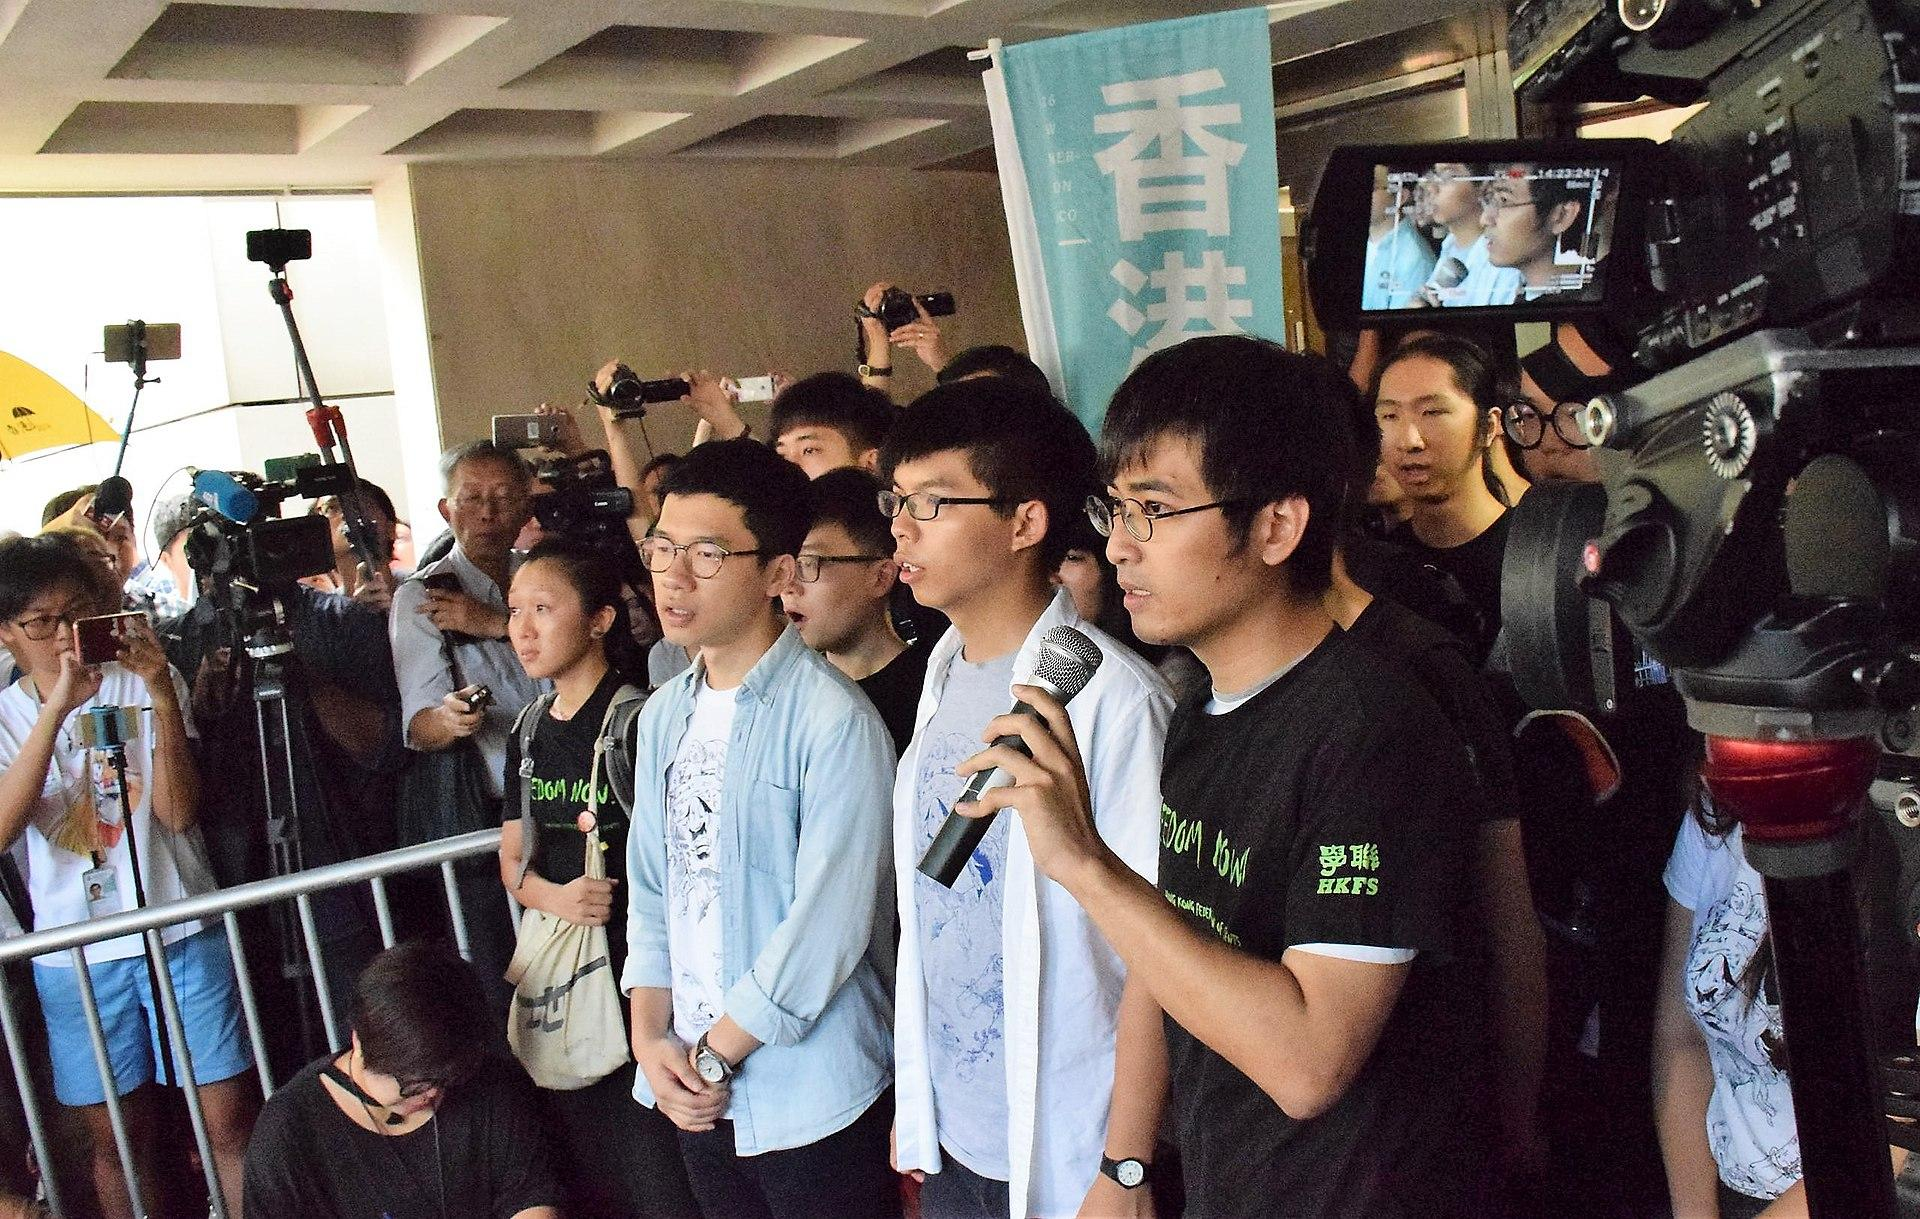 Law, Wong, and Chow speaking to media and supporters before entering court on 17 August 2017, Hong Kong. (Image: 湯惠芸 [Public domain])